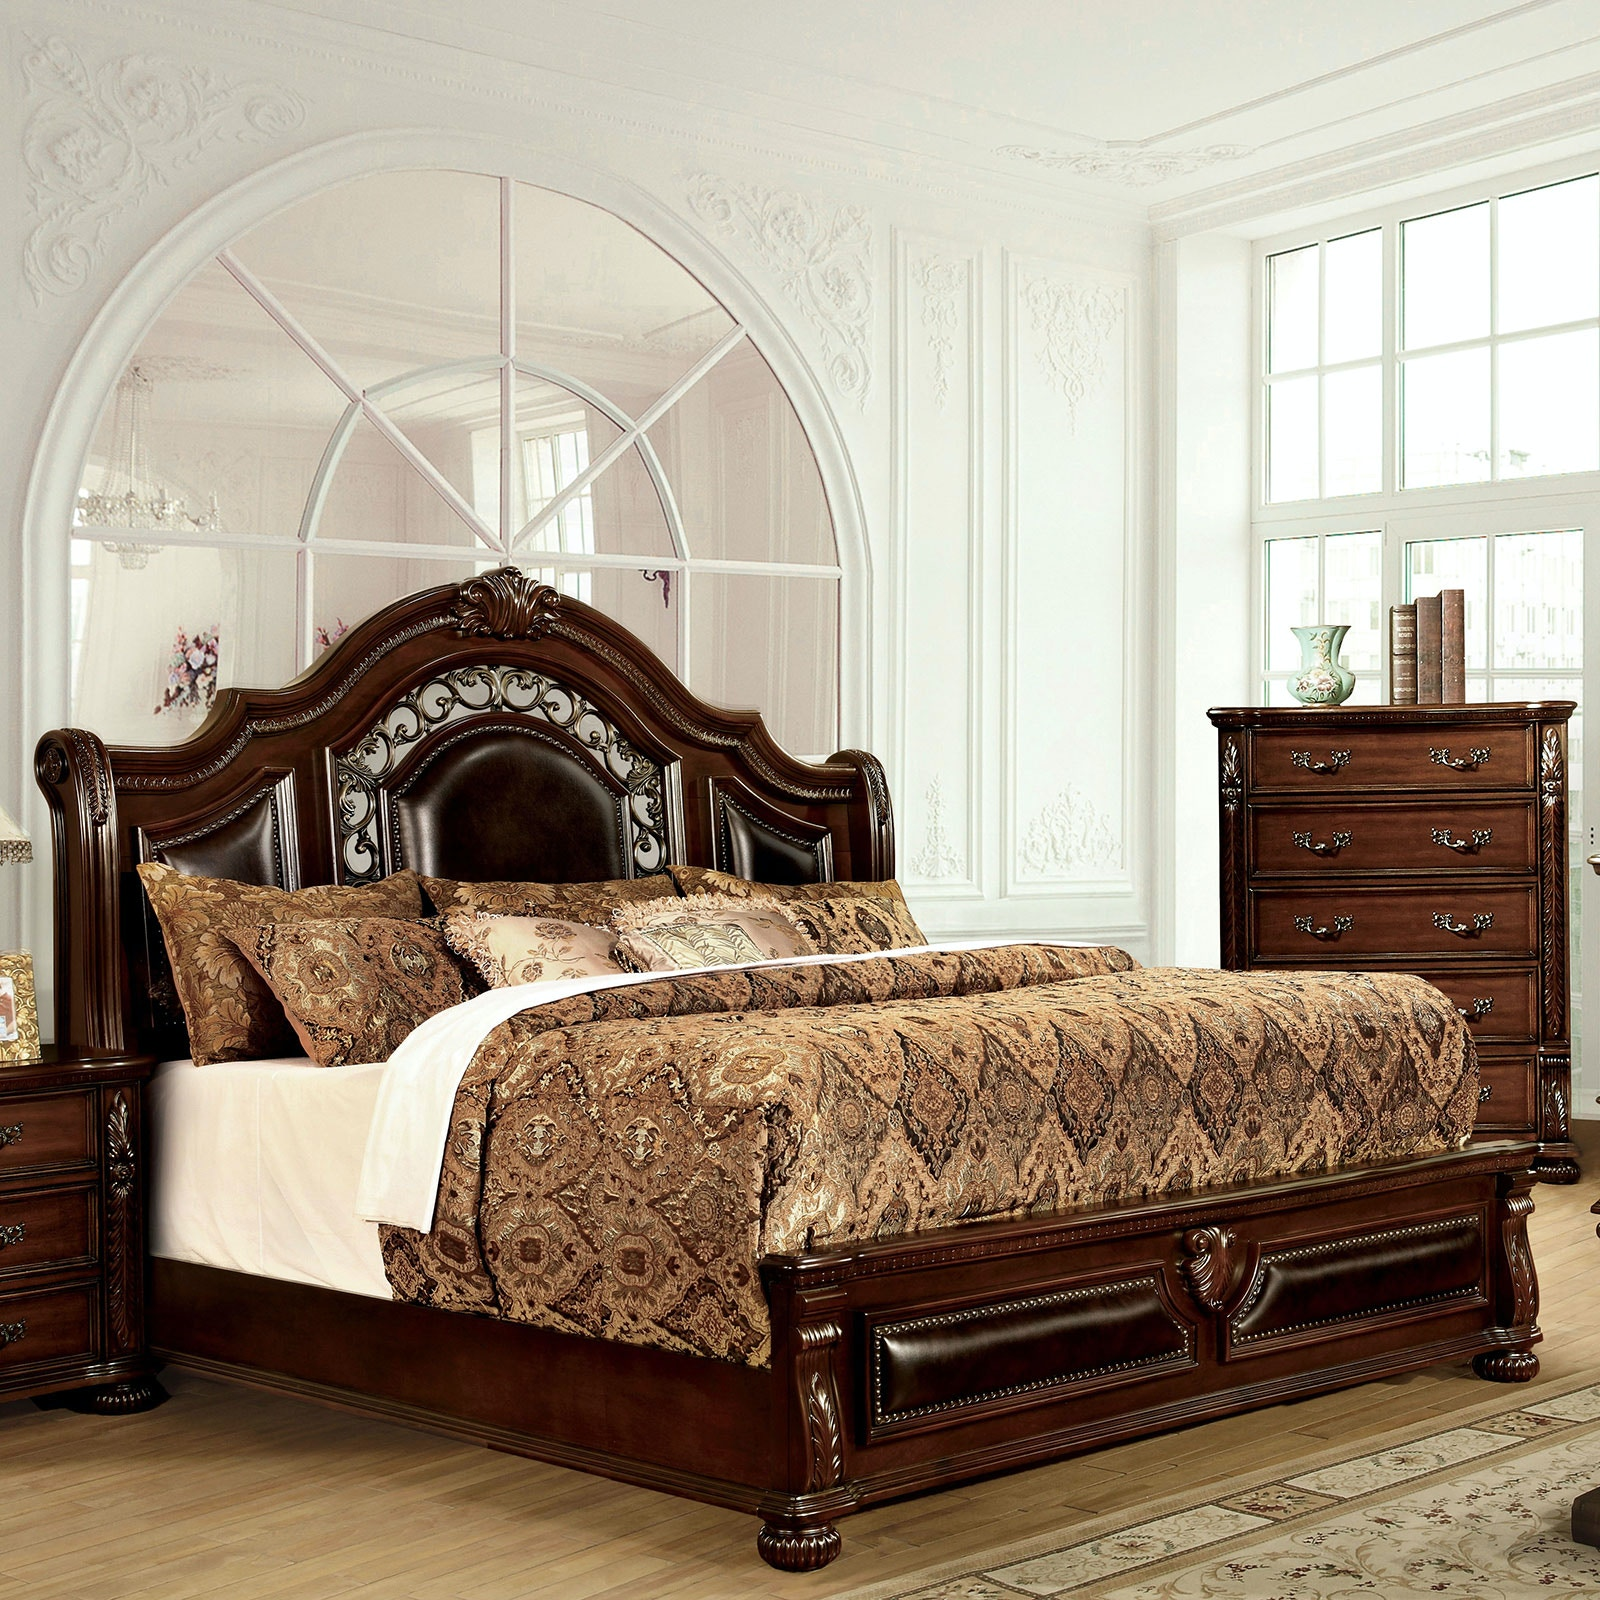 Furniture Of America Cal.King Bed CM7588CK BED